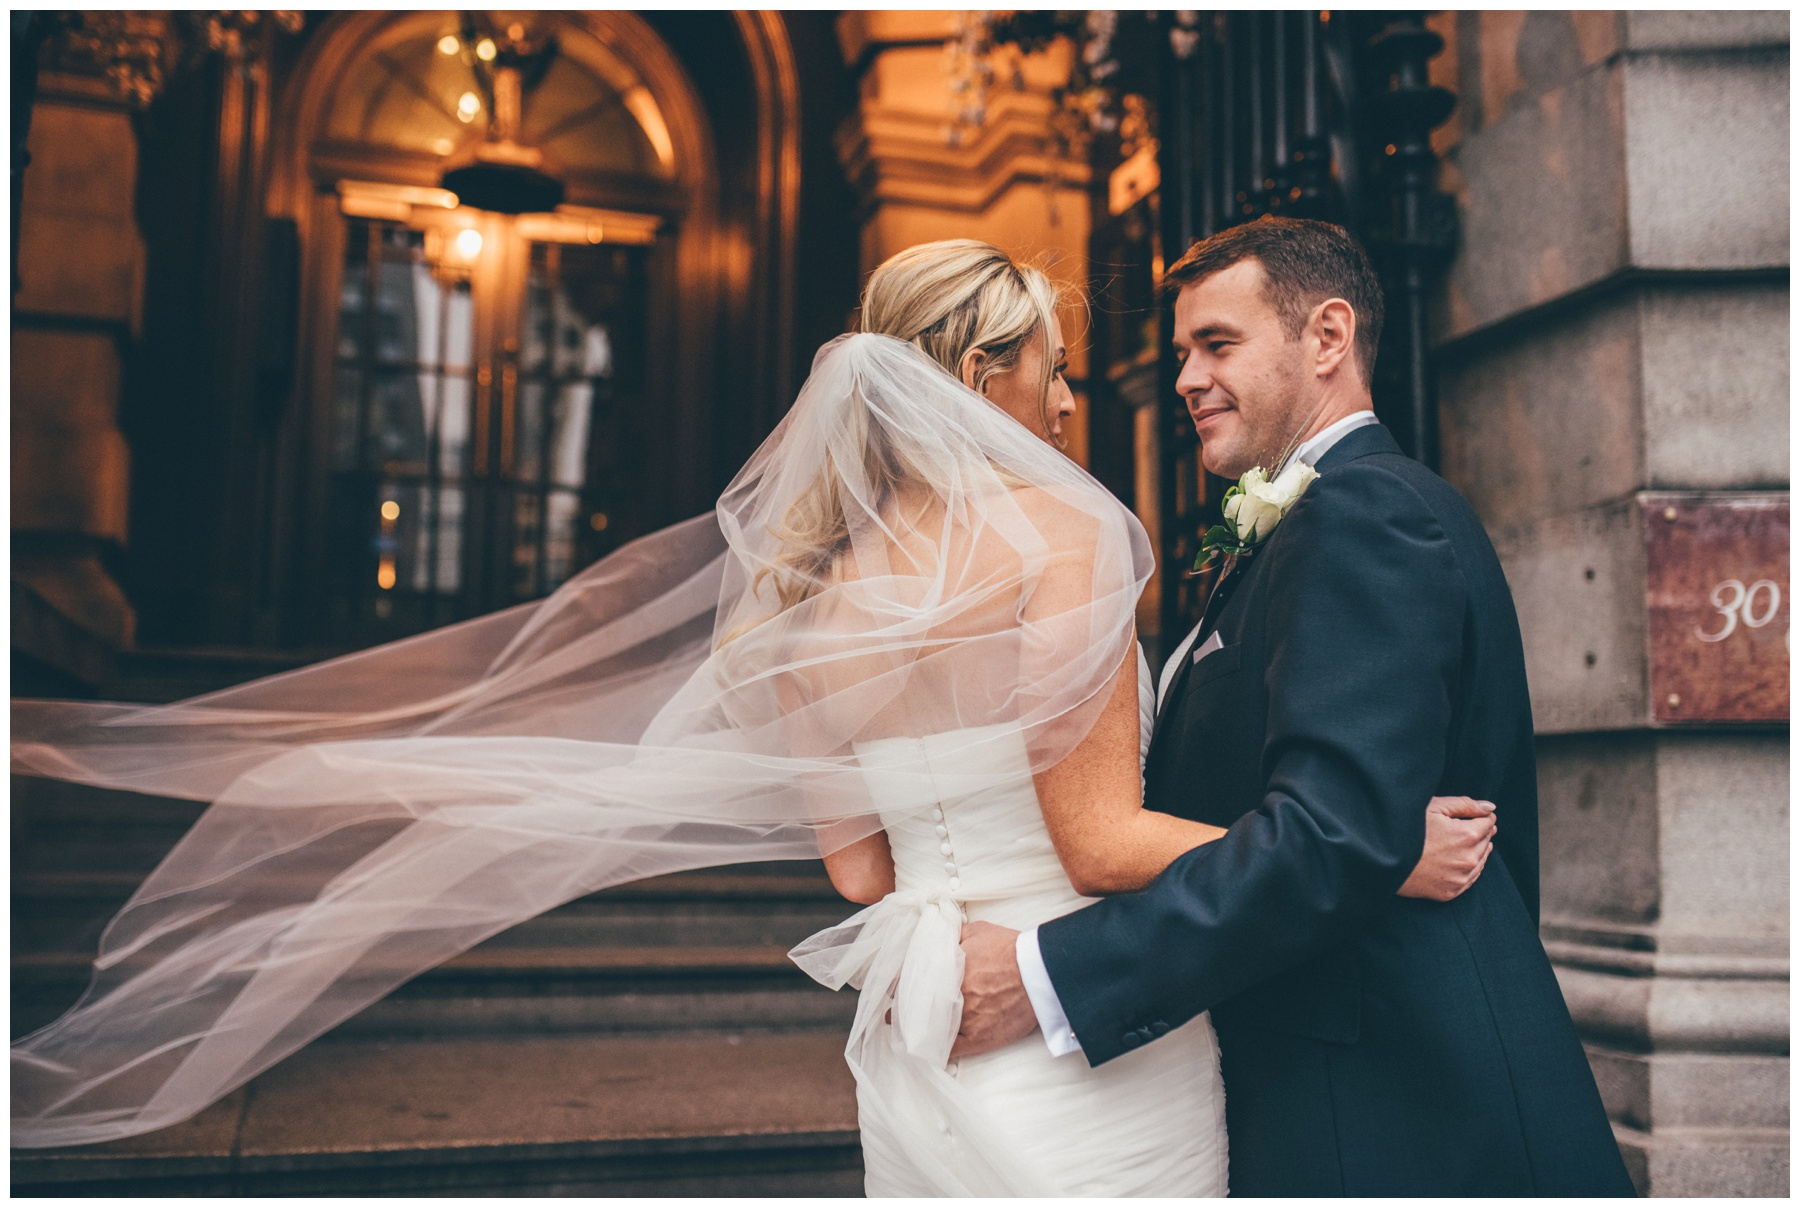 Bride and groom embrace at the front of their Liverpool City Centre wedding, 30 James Street,